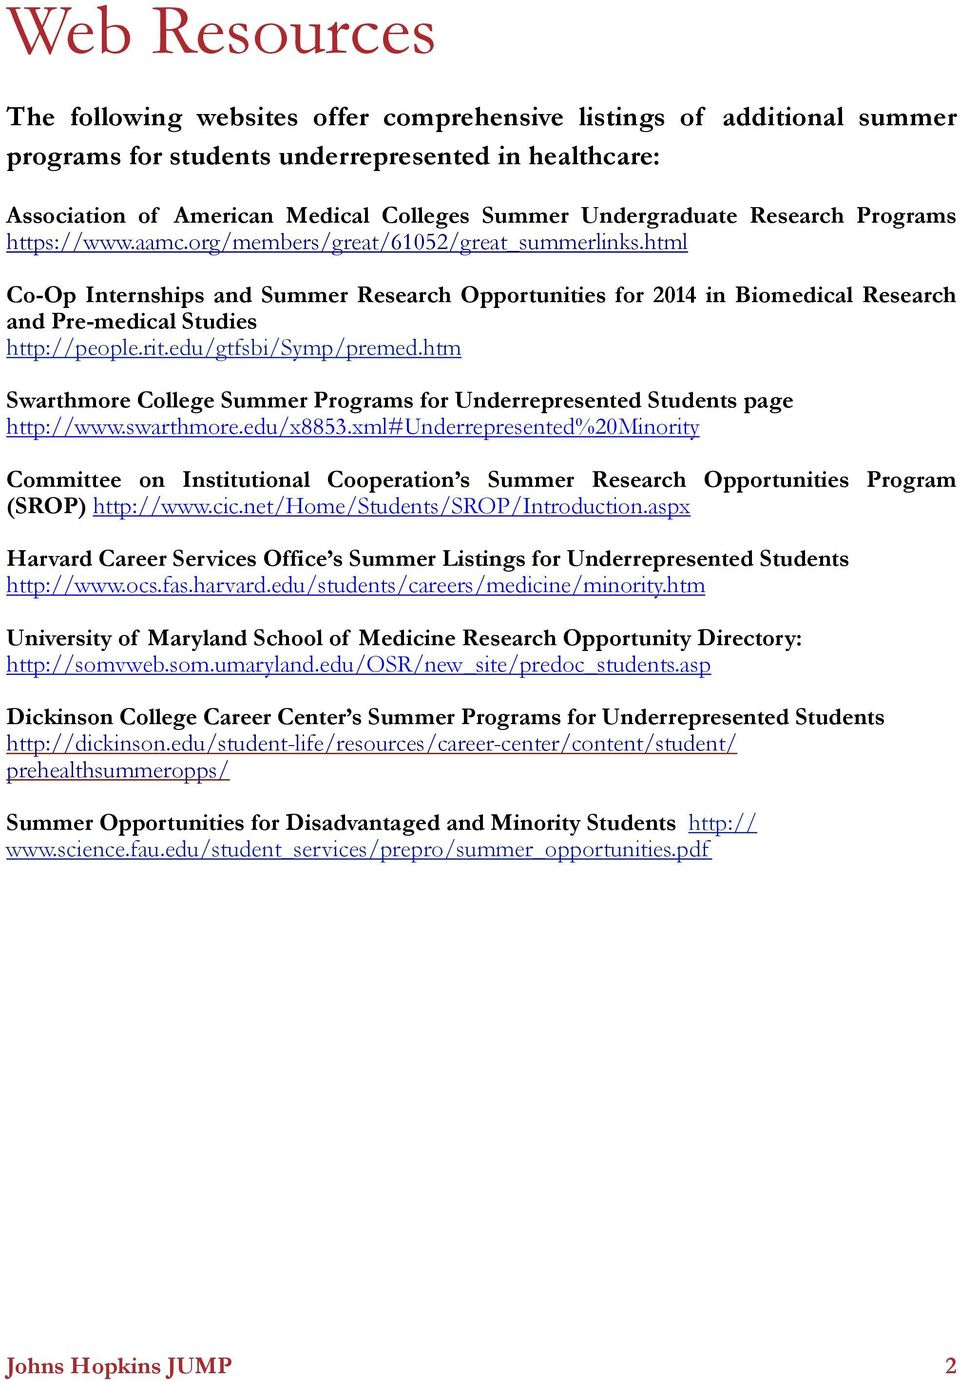 html Co-Op Internships and Summer Research Opportunities for 2014 in Biomedical Research and Pre-medical Studies http://people.rit.edu/gtfsbi/symp/premed.